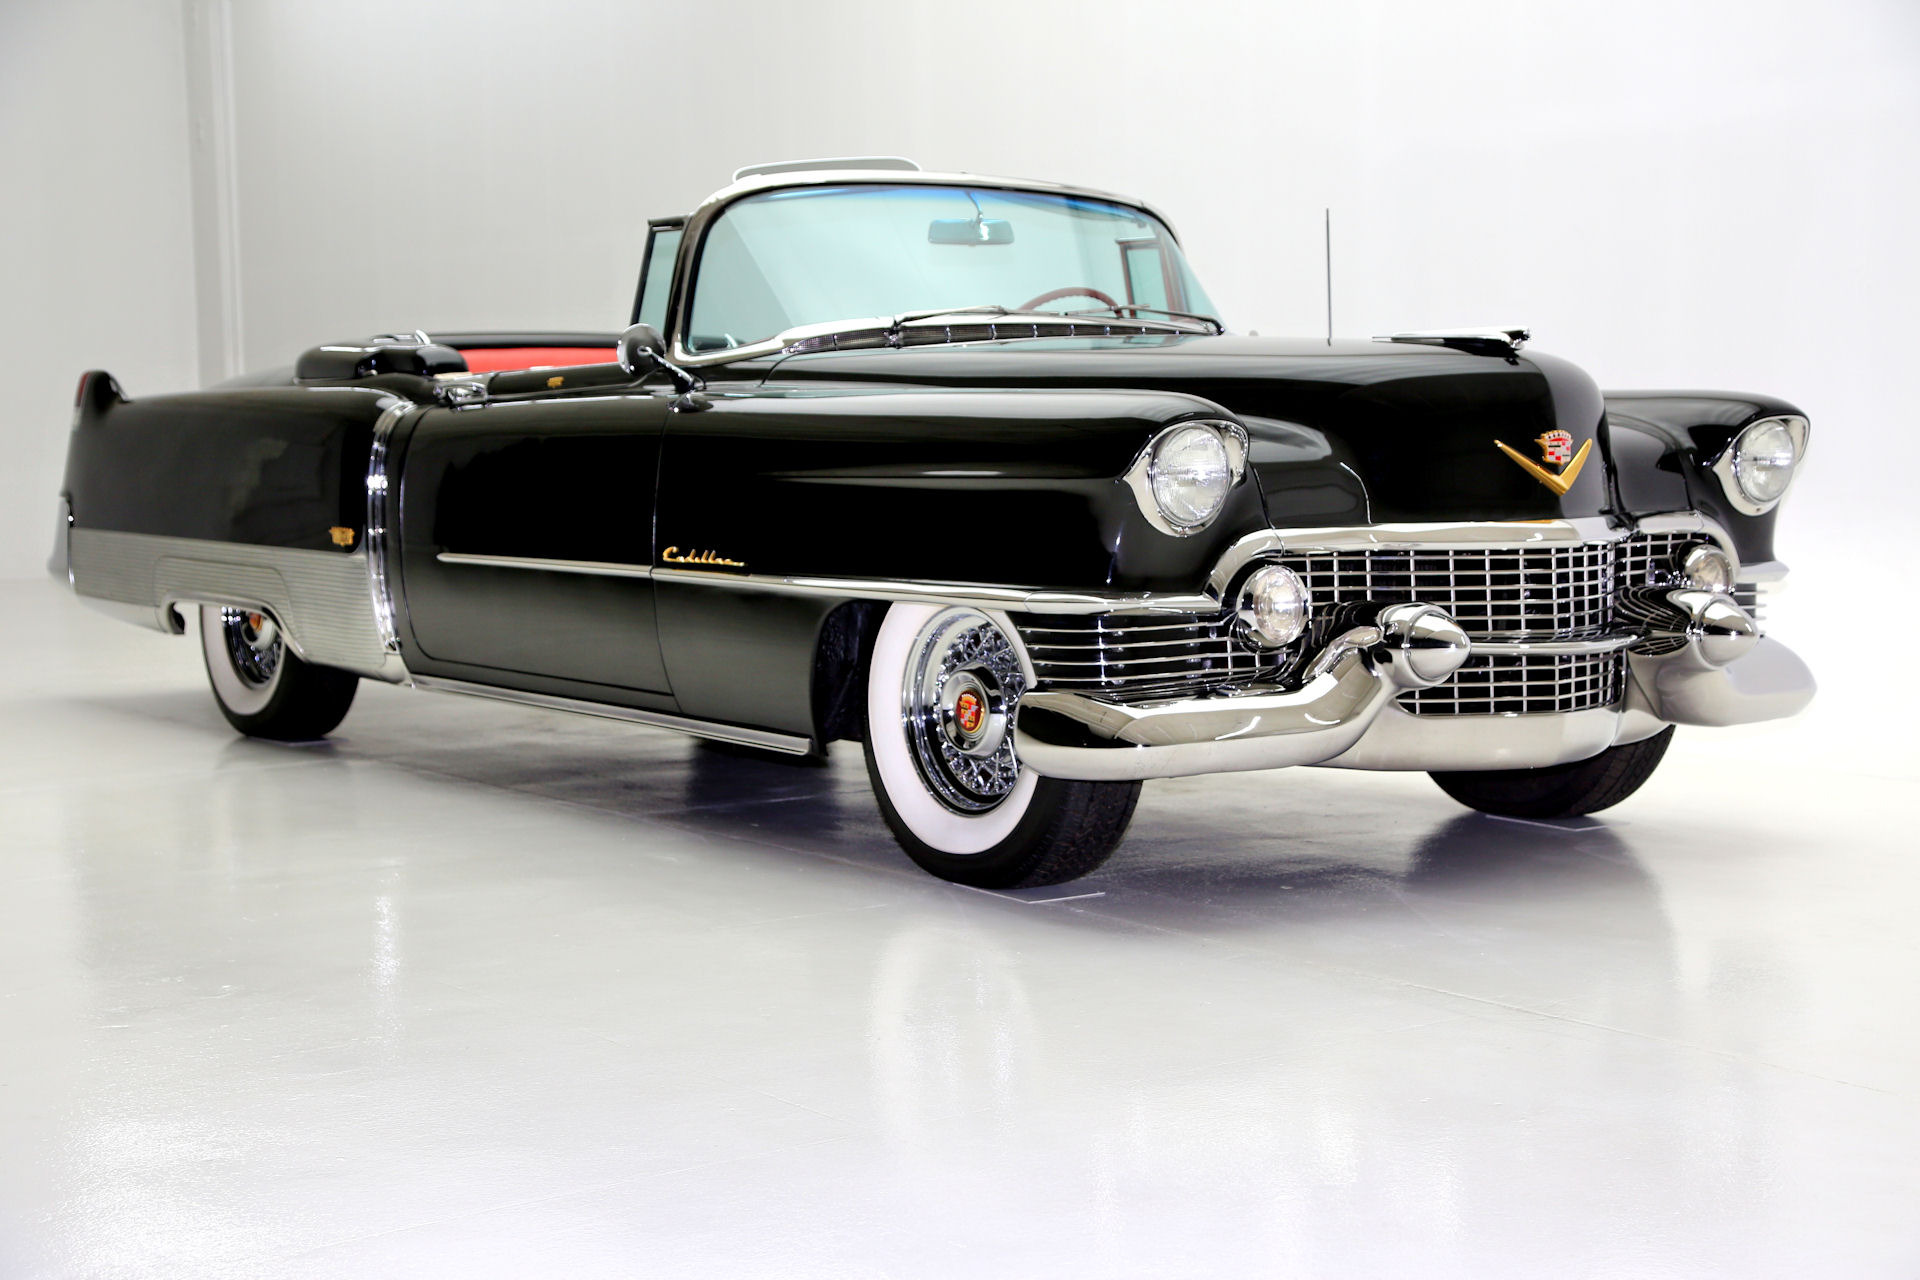 1954 Cadillac Eldorado Convertible Gorgeous Make Your Own Beautiful  HD Wallpapers, Images Over 1000+ [ralydesign.ml]